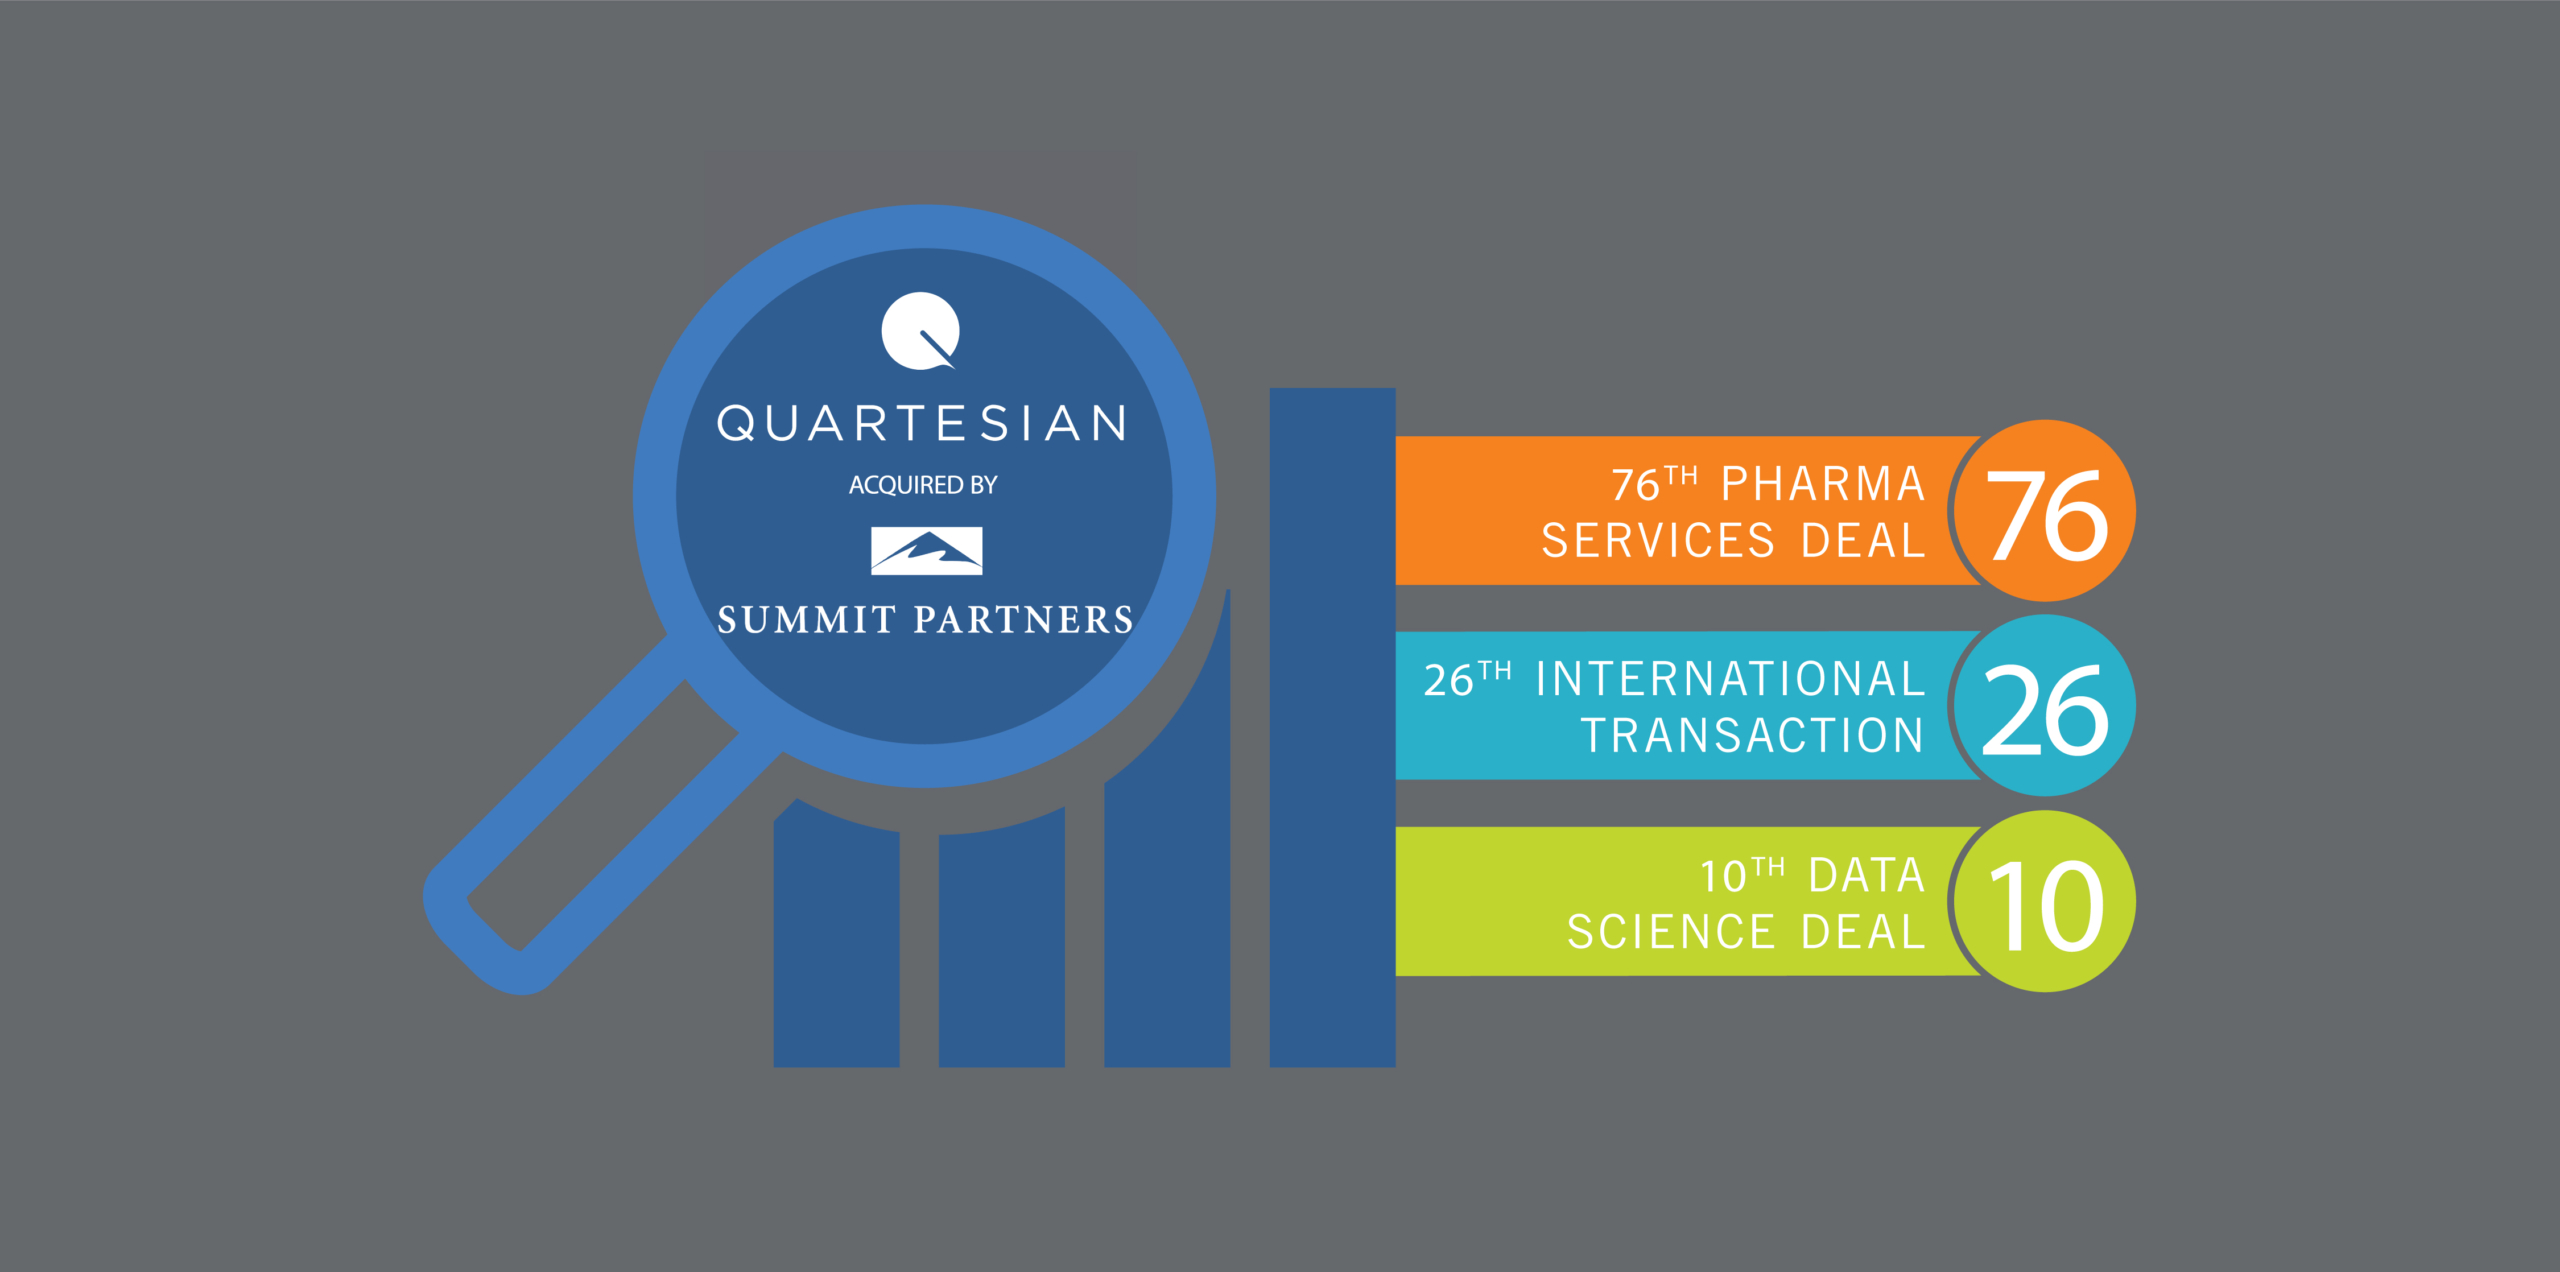 Quartesian acquired by Summit Partners to form key pillar of newly established global outsourced medtech services provider